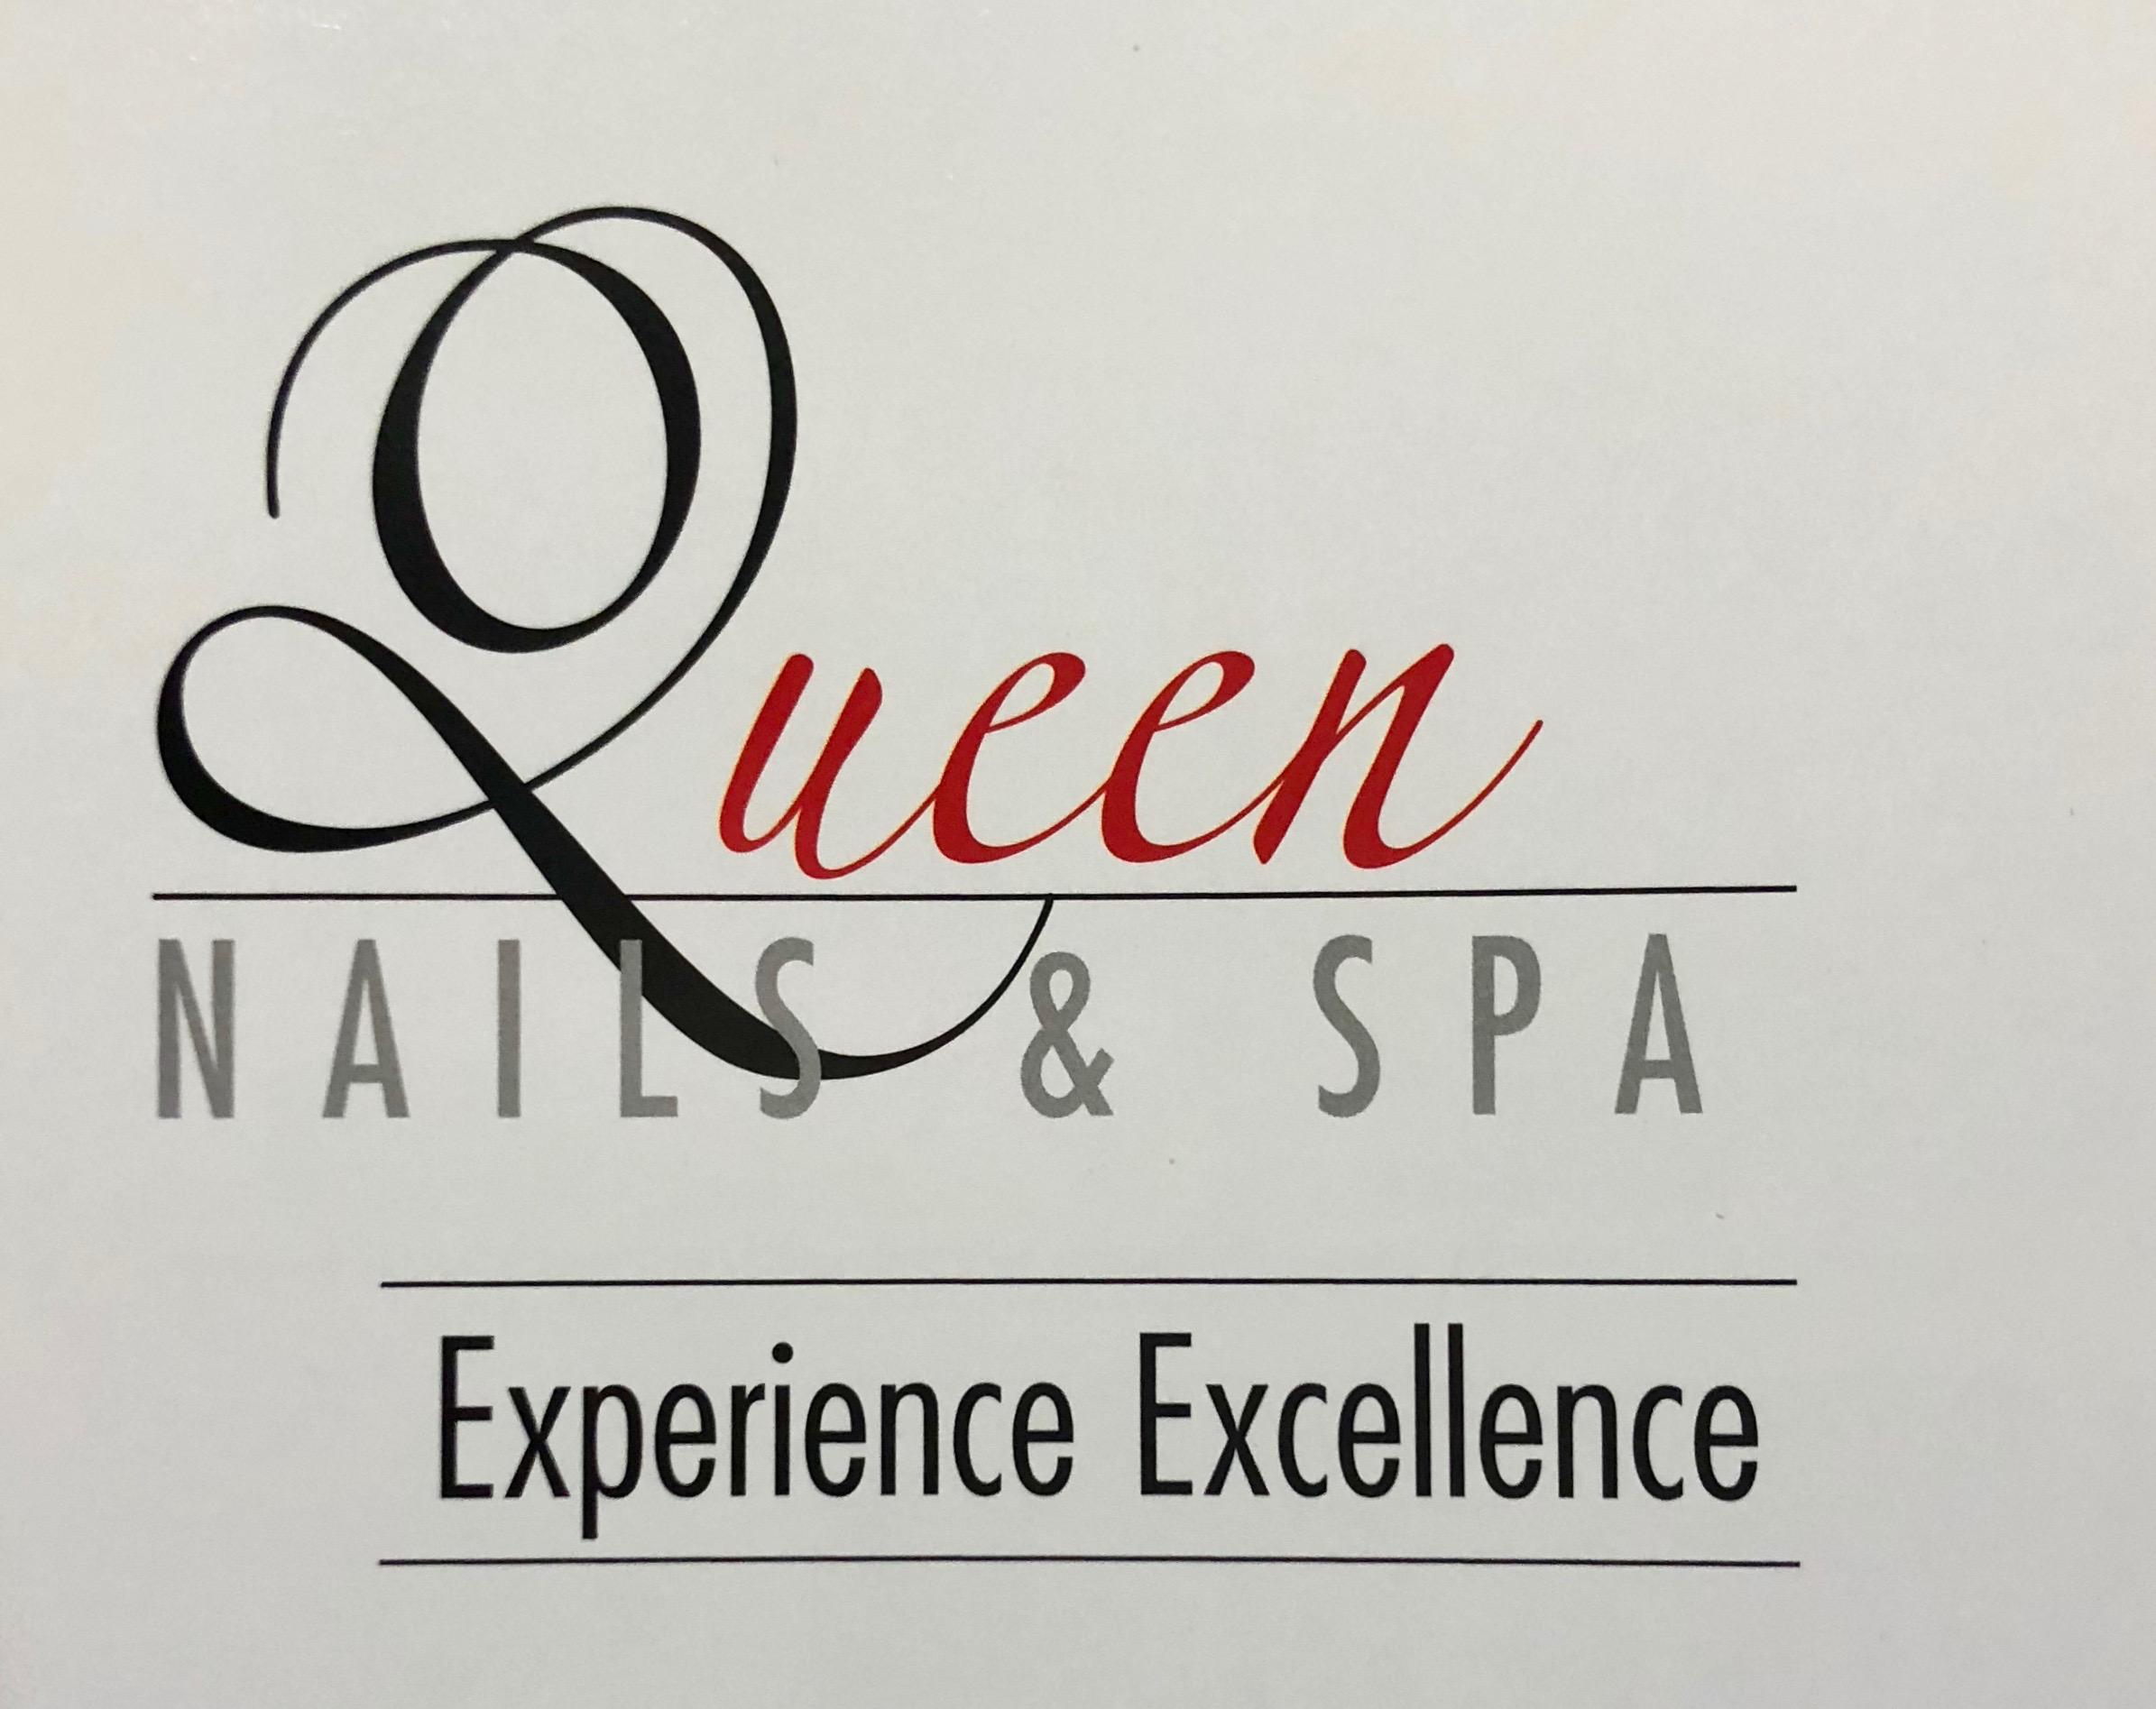 Queen Nails & Spa - Nail salon in Brea, CA 92821